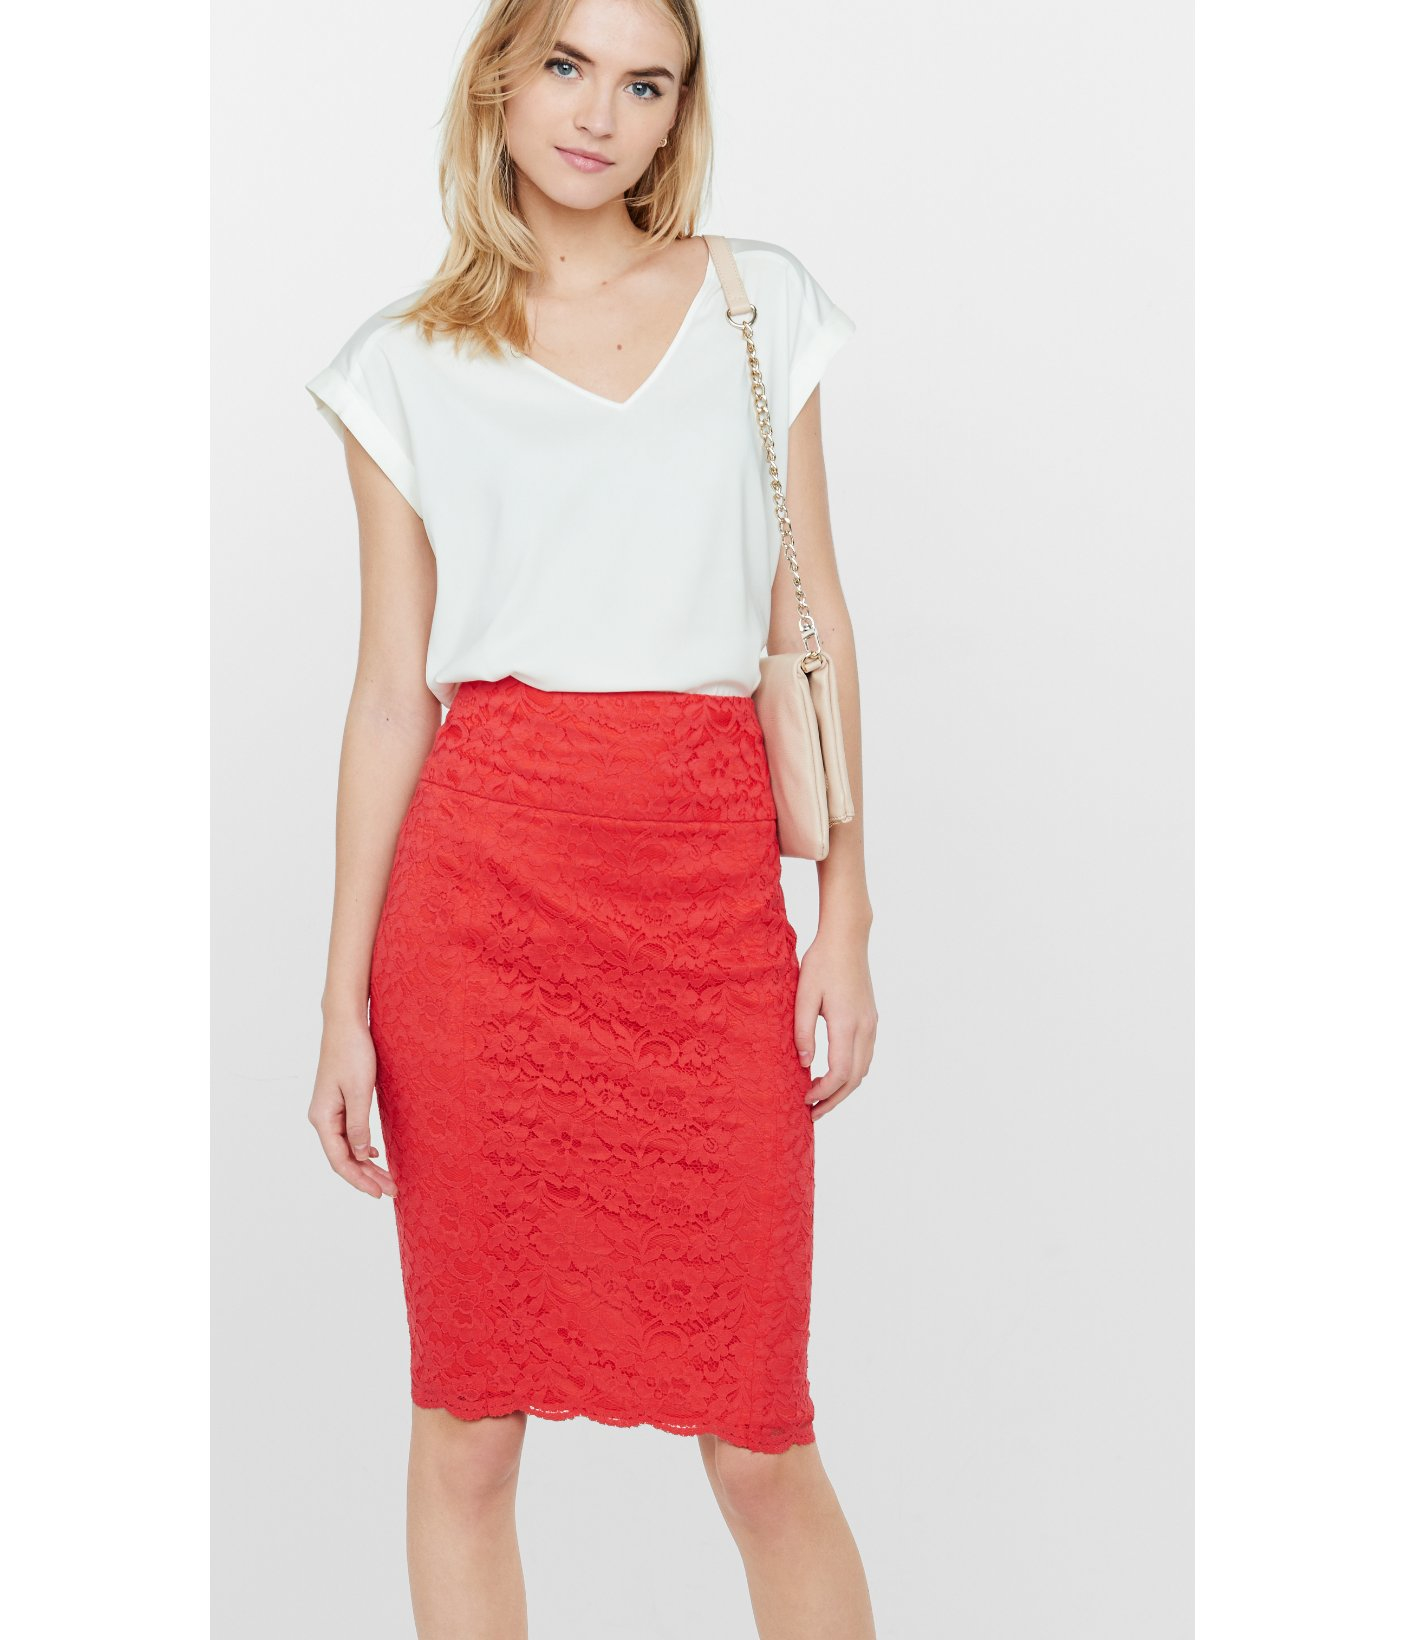 Express Bright Red High Waisted Lace Midi Pencil Skirt in Red | Lyst